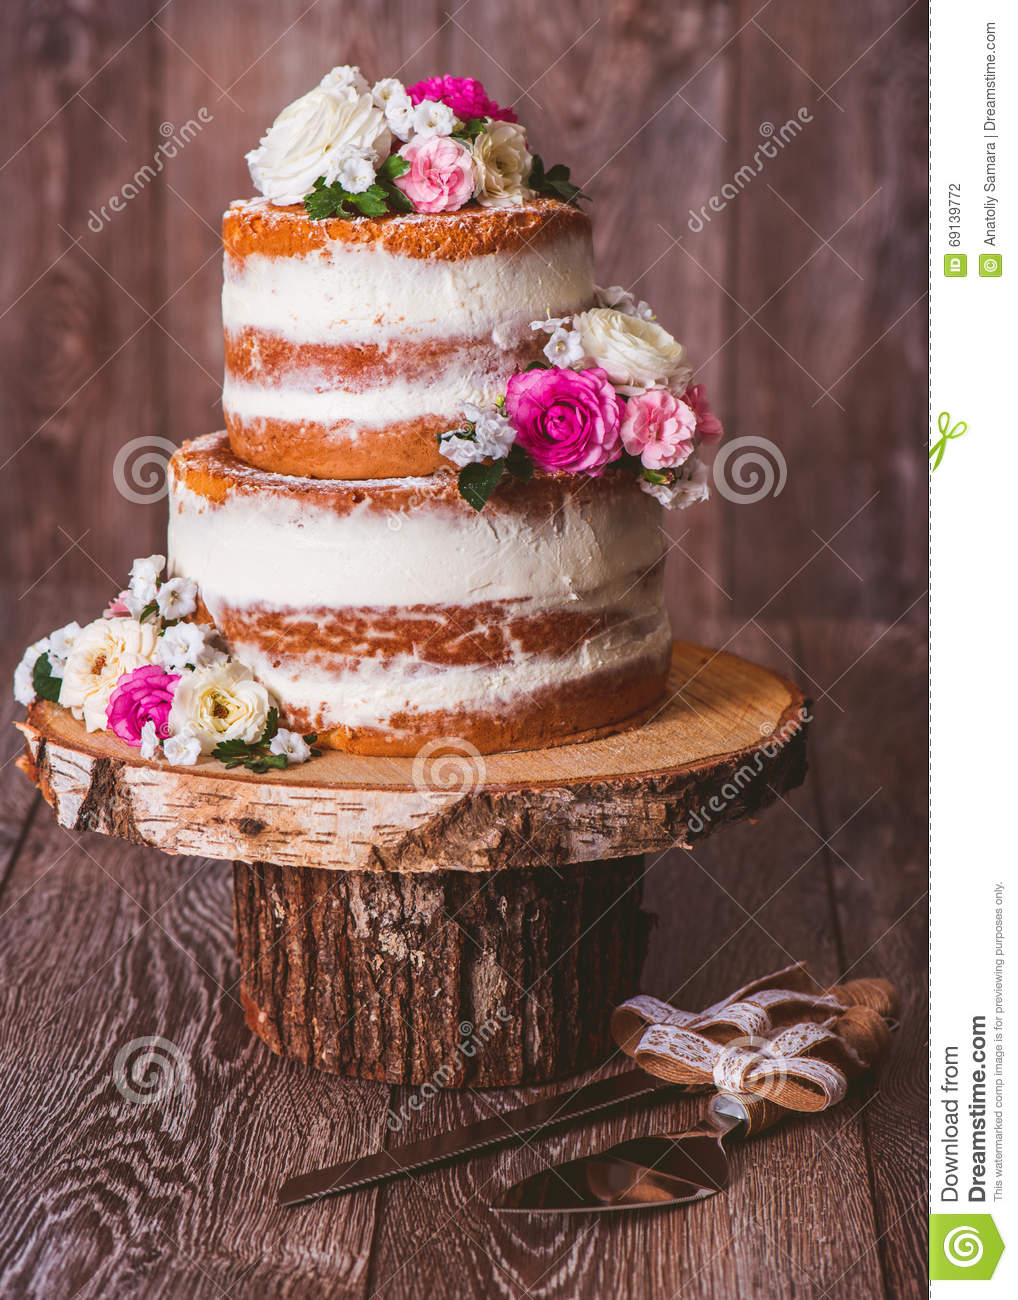 wedding cake with flowers in between layers vintage wooden table with the wedding cake 2 stock photo 26882